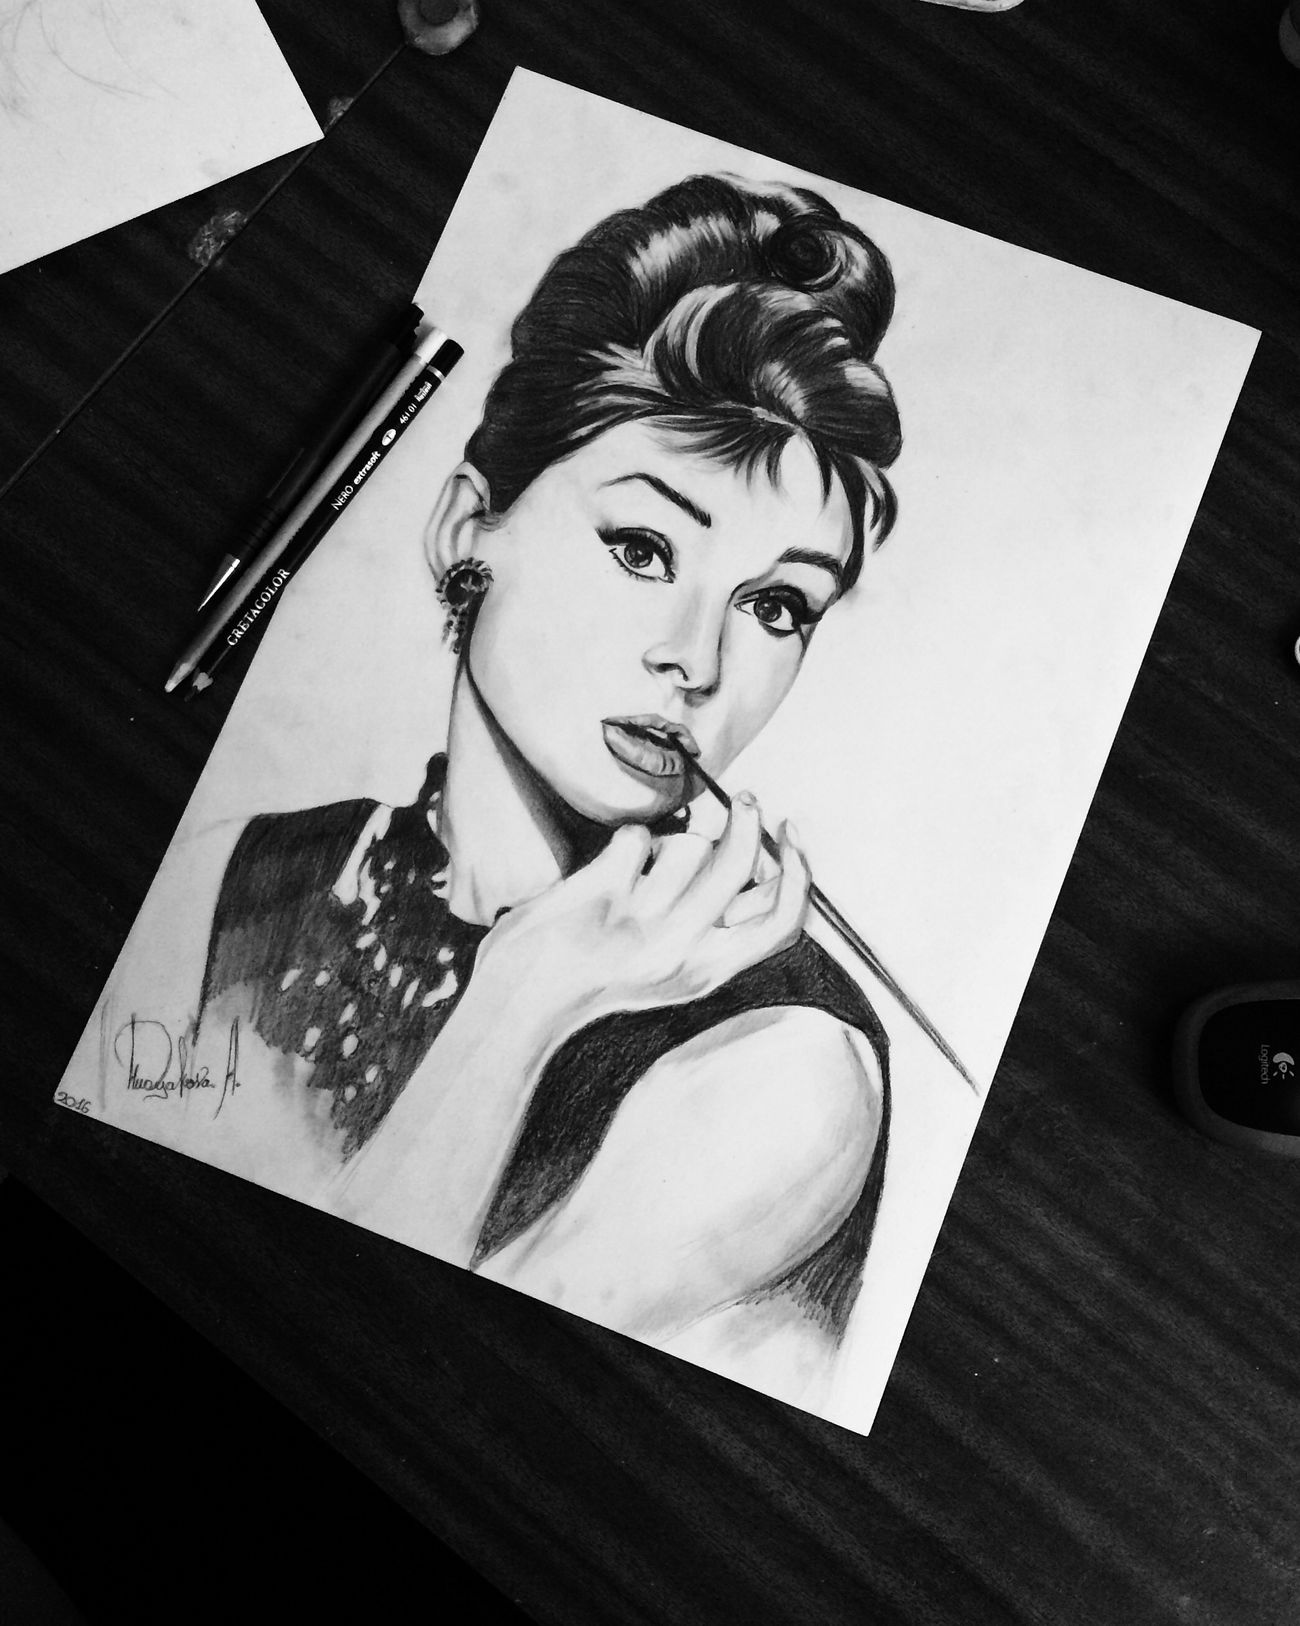 Awesome Beauty Face Hello World Girl OpenEdit Art, Drawing, Creativity Drawing Portrait Myhobby Sketch Illustration Black & White ArtWork Pretty Art Draw Beautiful Audry Hepburn